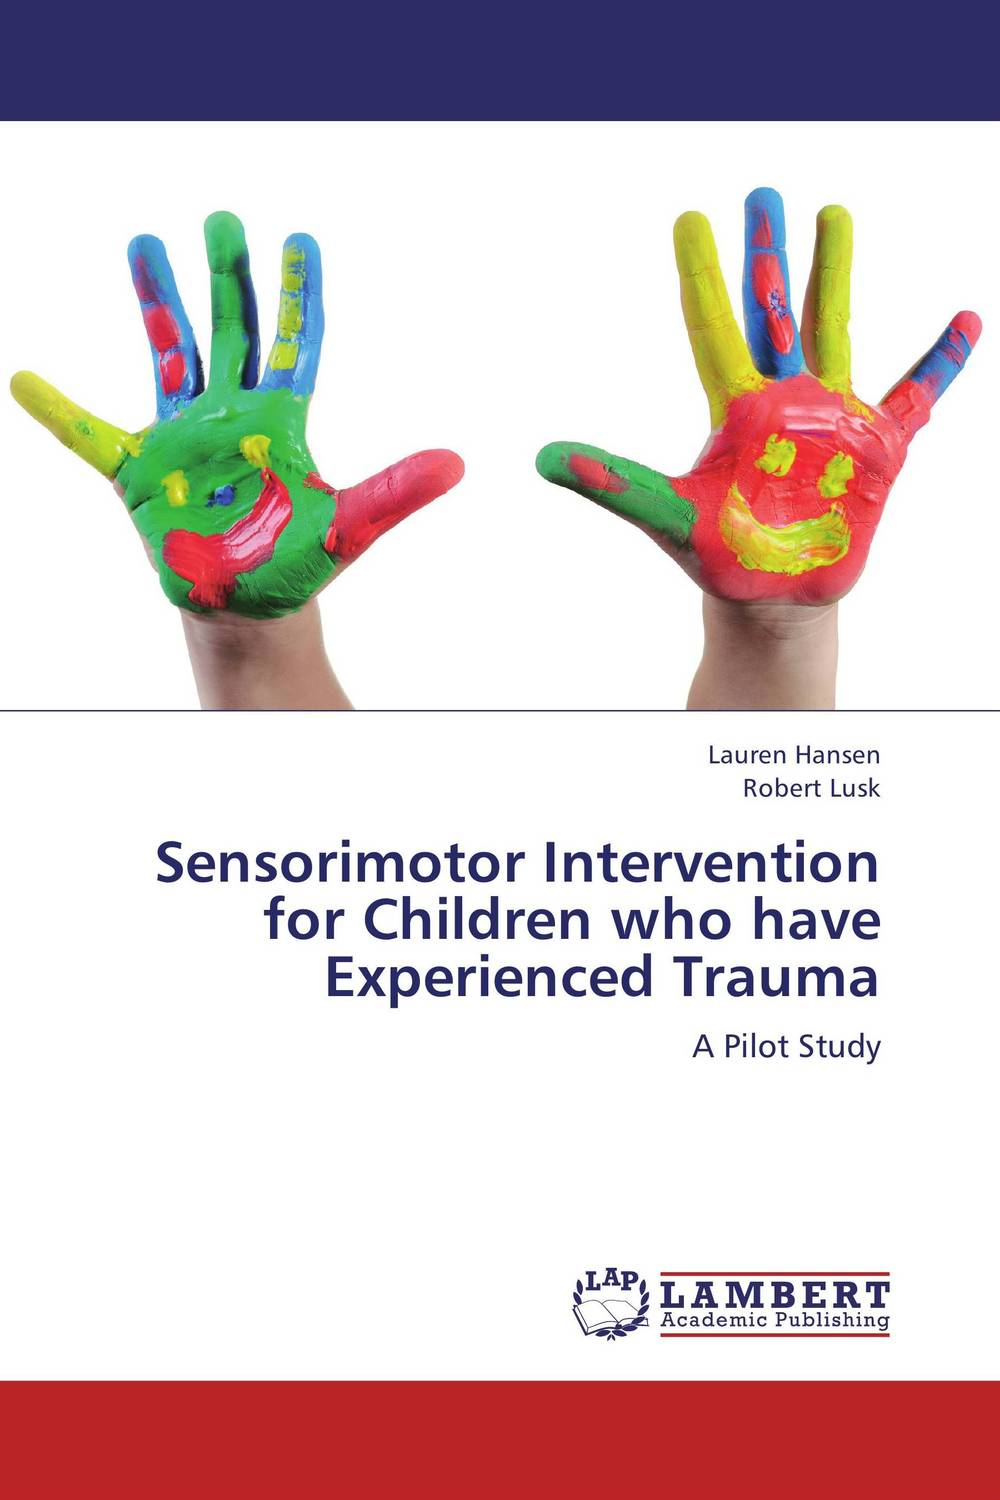 Sensorimotor Intervention for Children who have Experienced Trauma the salmon who dared to leap higher